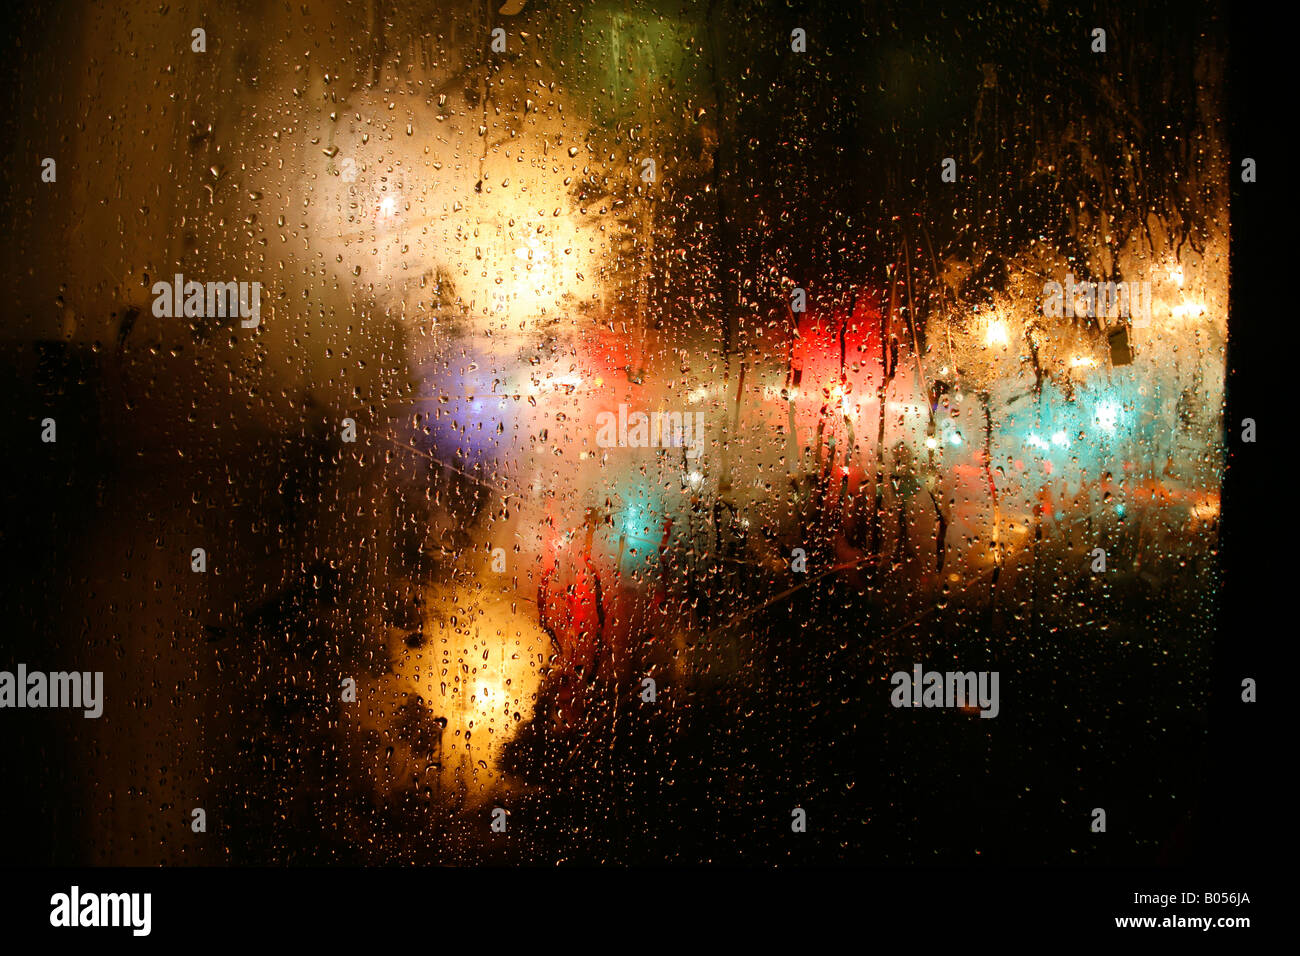 Regardant par une fenêtre sale pluie à Harrington Road, South Kensington, Londres Photo Stock